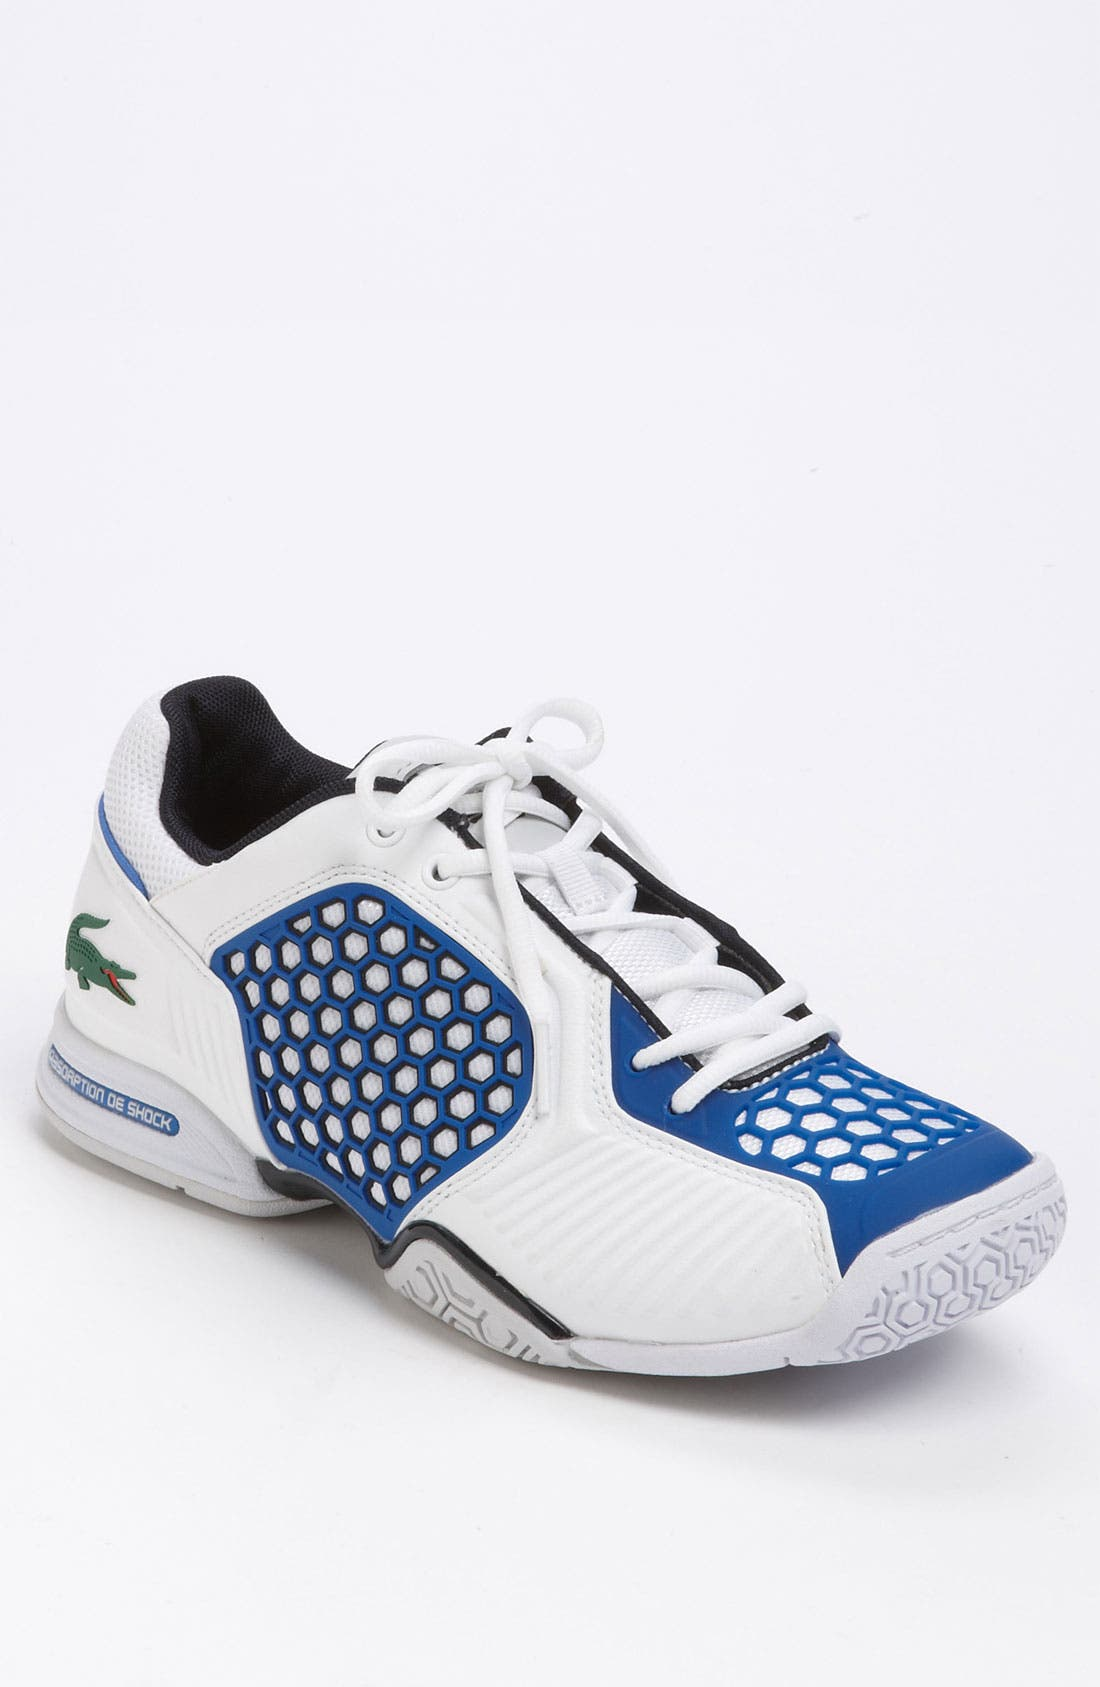 Alternate Image 1 Selected - Lacoste 'Repel 2' Tennis Shoe (Men)